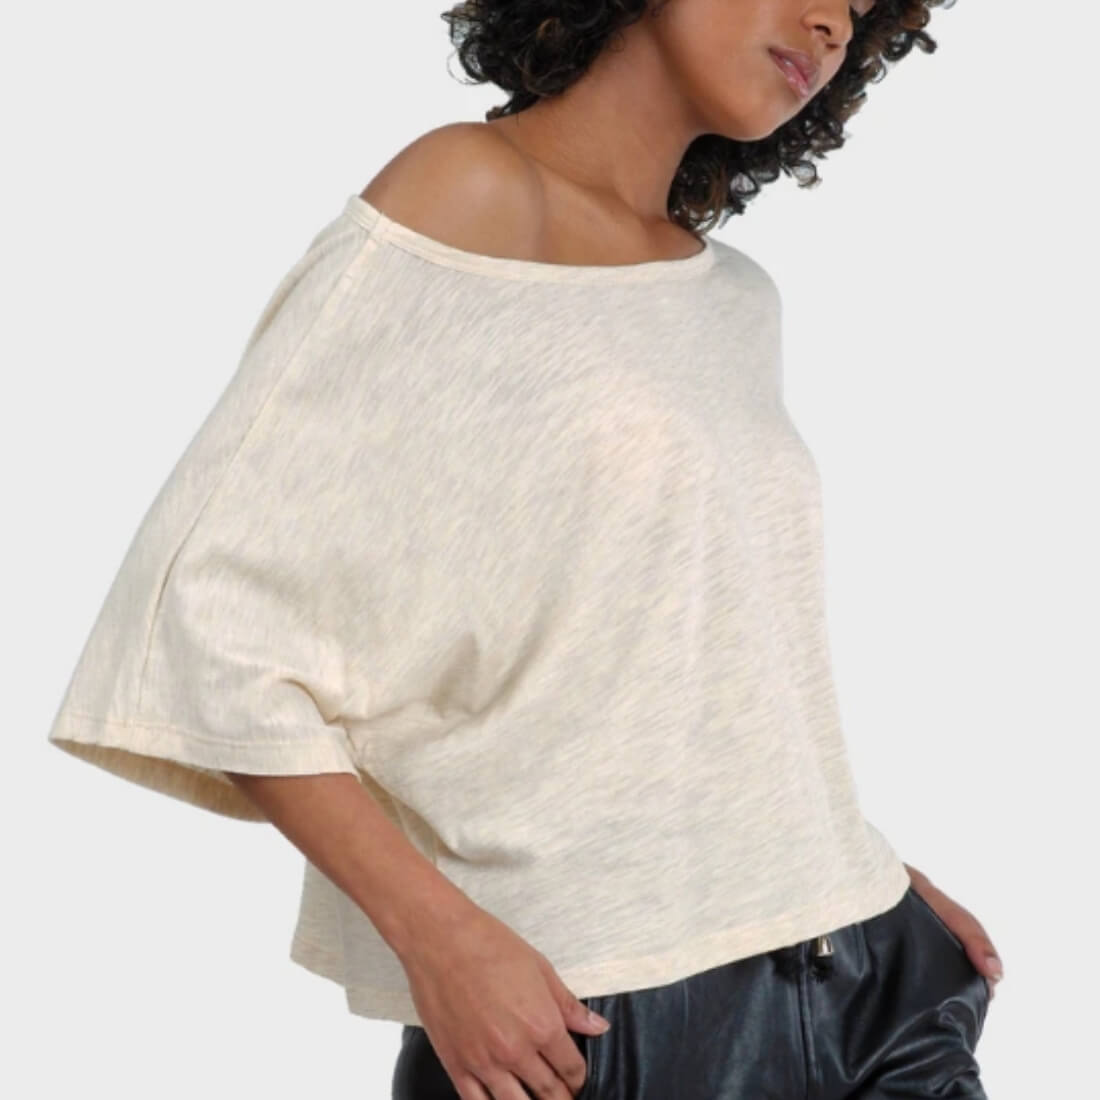 Lumi crop top, side profile